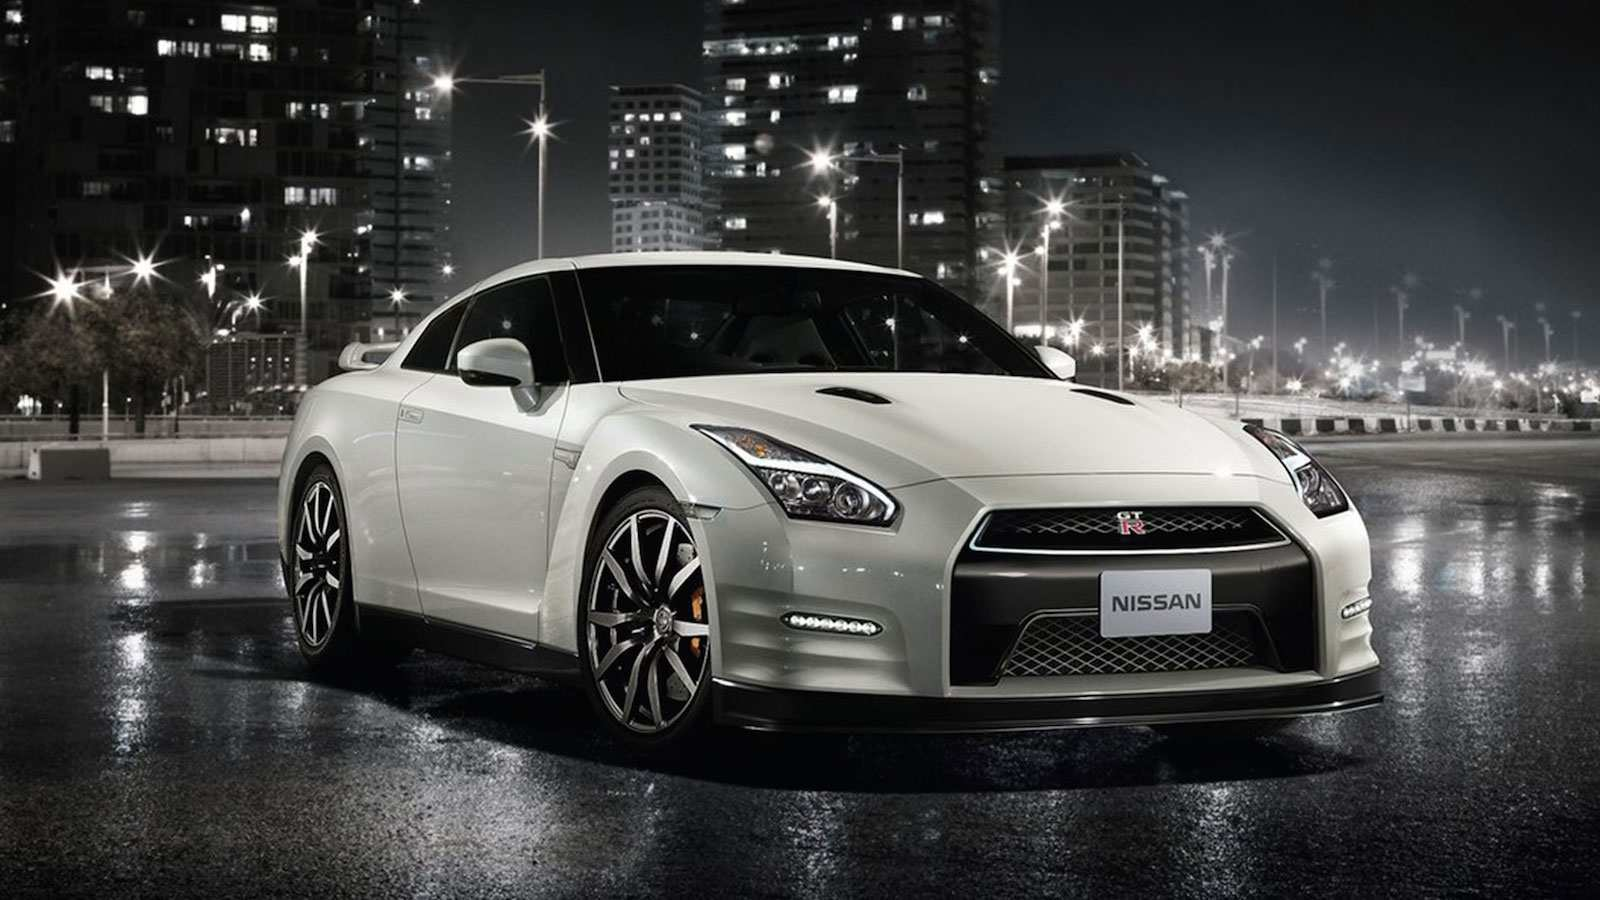 89 The Best 2019 Nissan Gtr Sedan Price